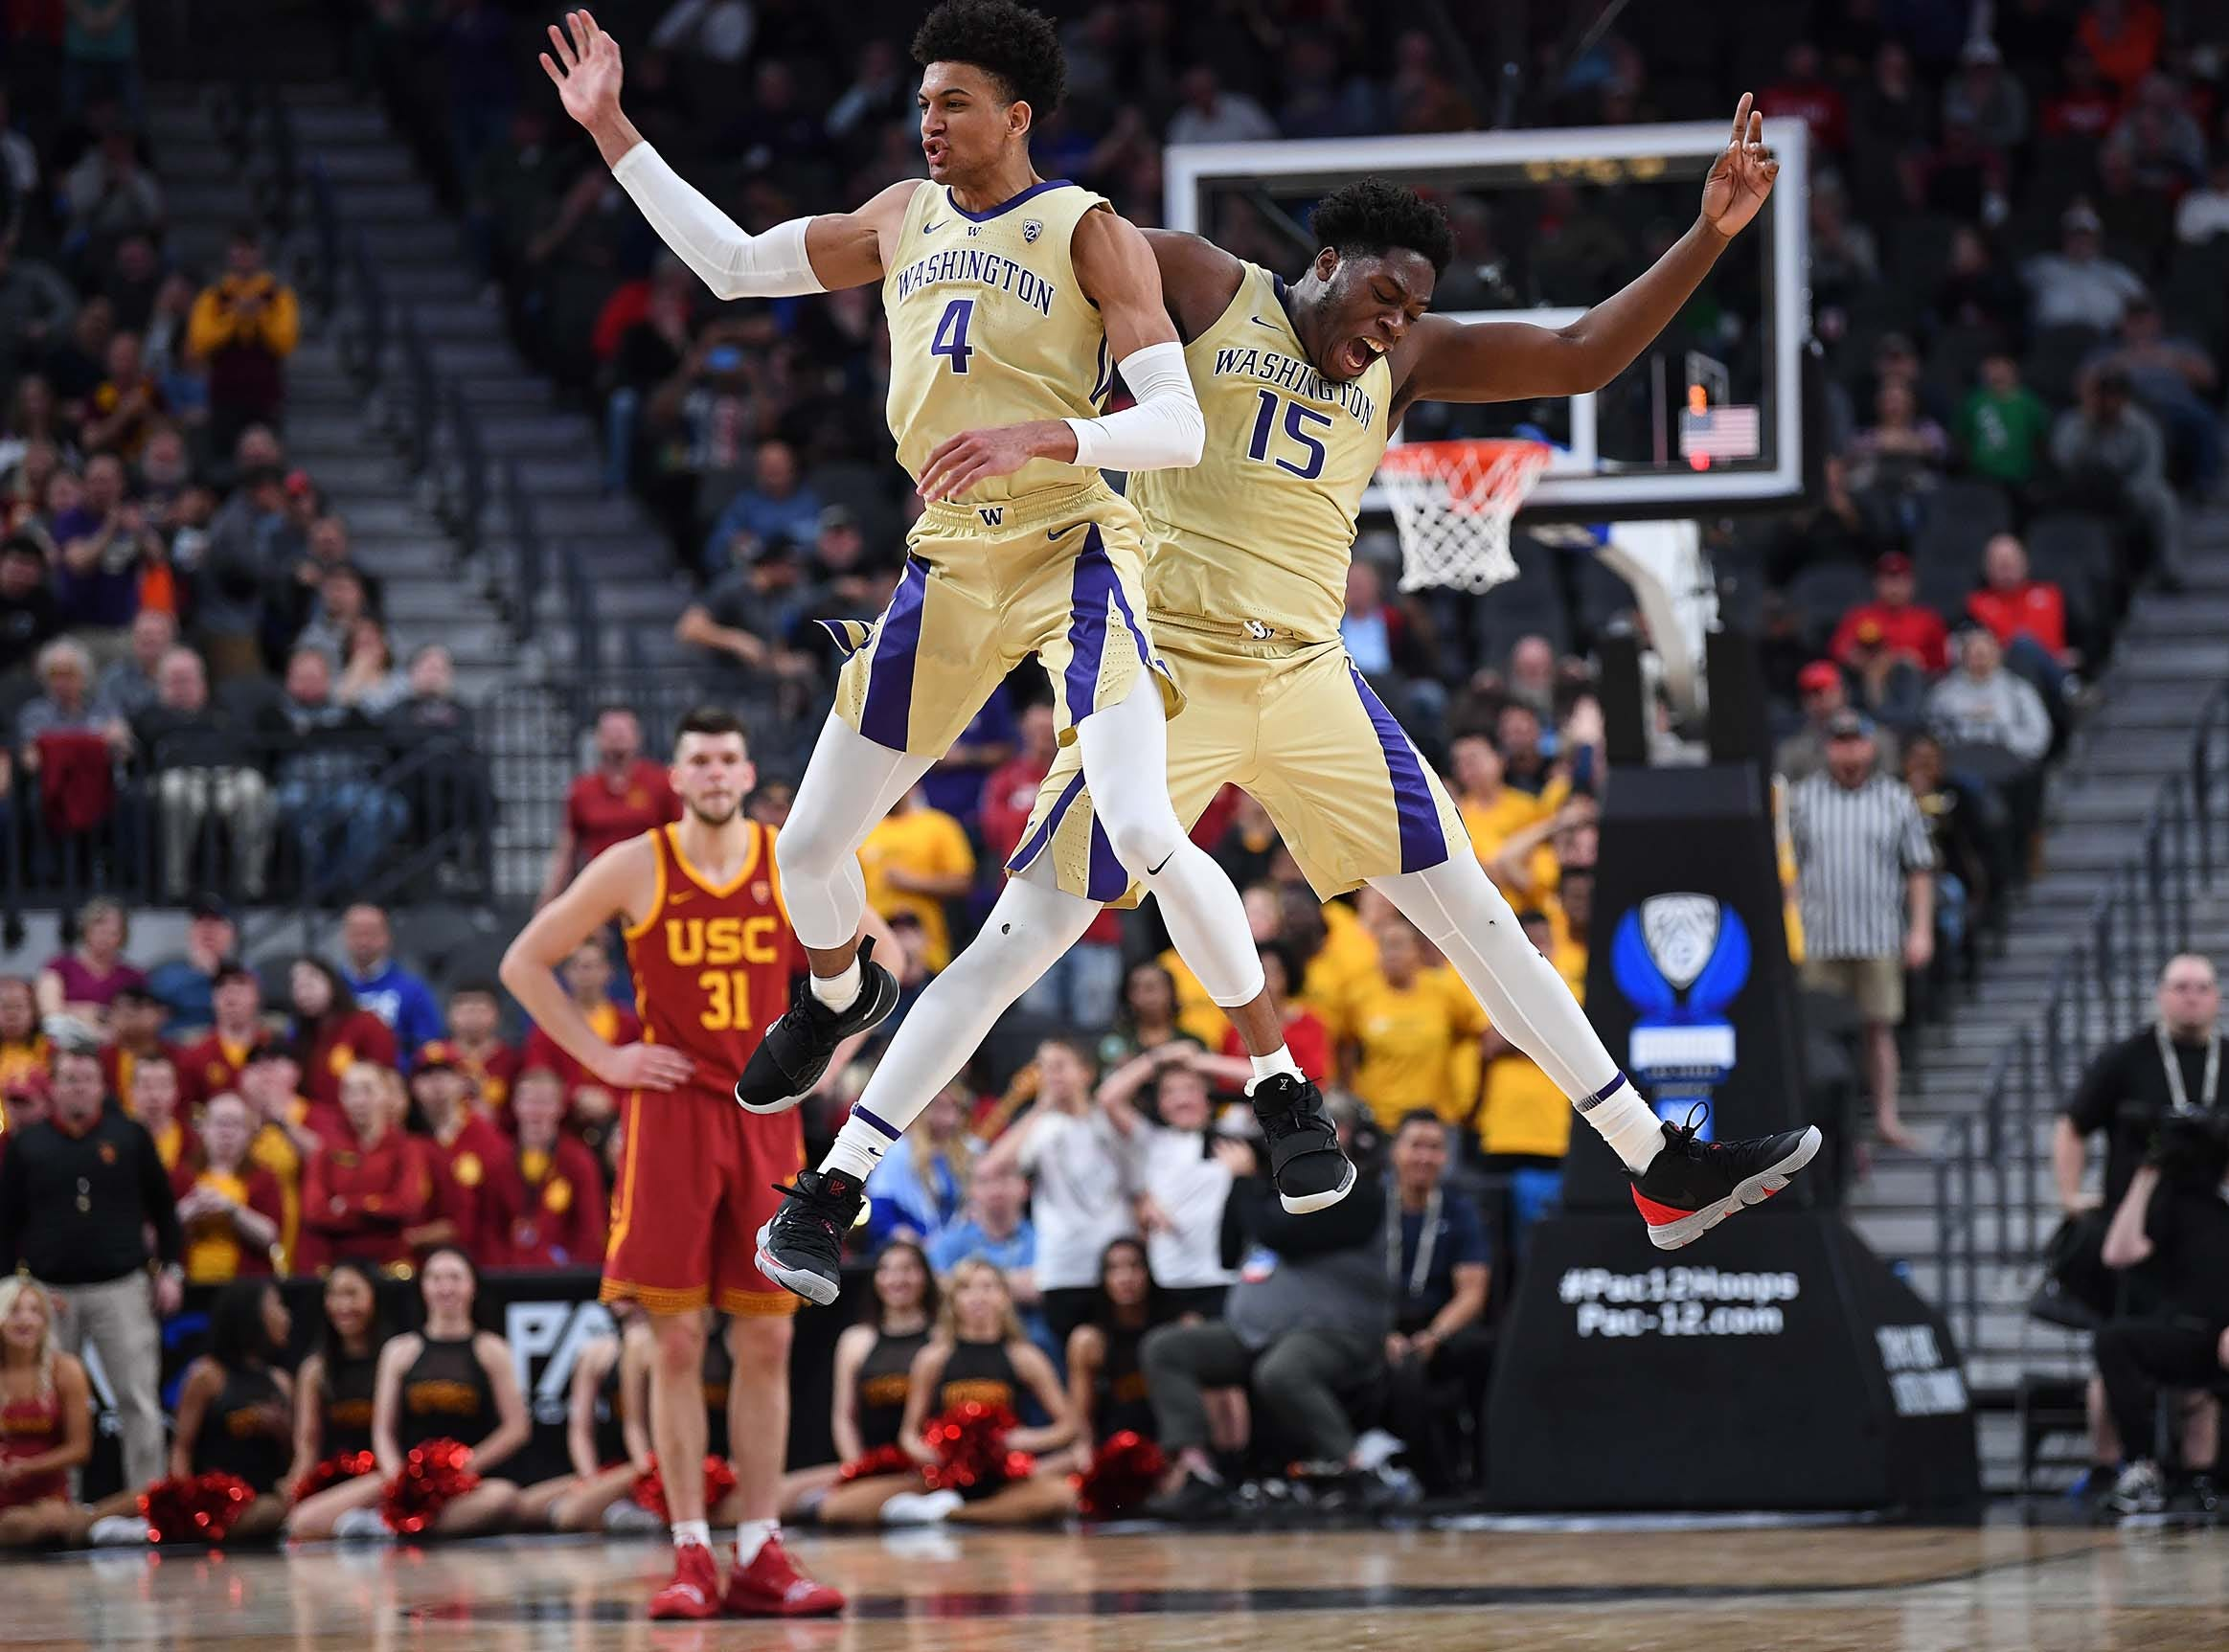 March 14: Washington Huskies guard Matisse Thybulle (4) celebrates with forward Noah Dickerson (15) in the final seconds of a Pac-12 conference tournament game against the USC Trojans.